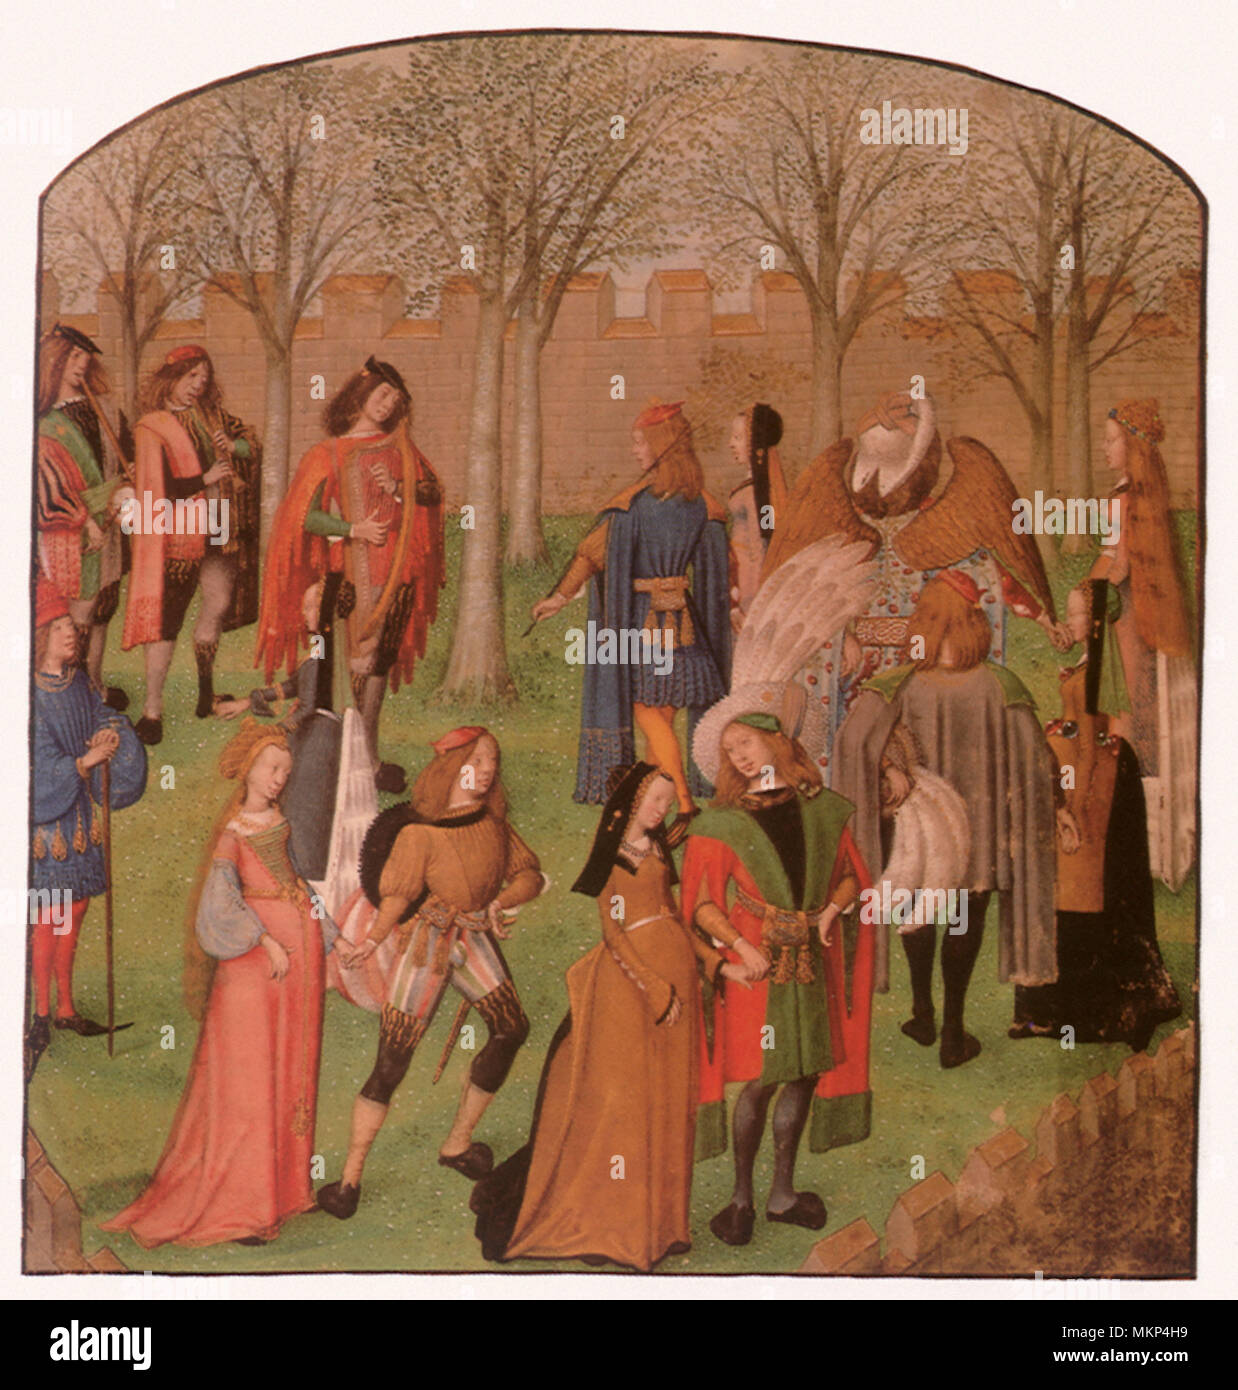 Knights and Ladies dancing in the Garden of Love 1450 Stock Photo ...